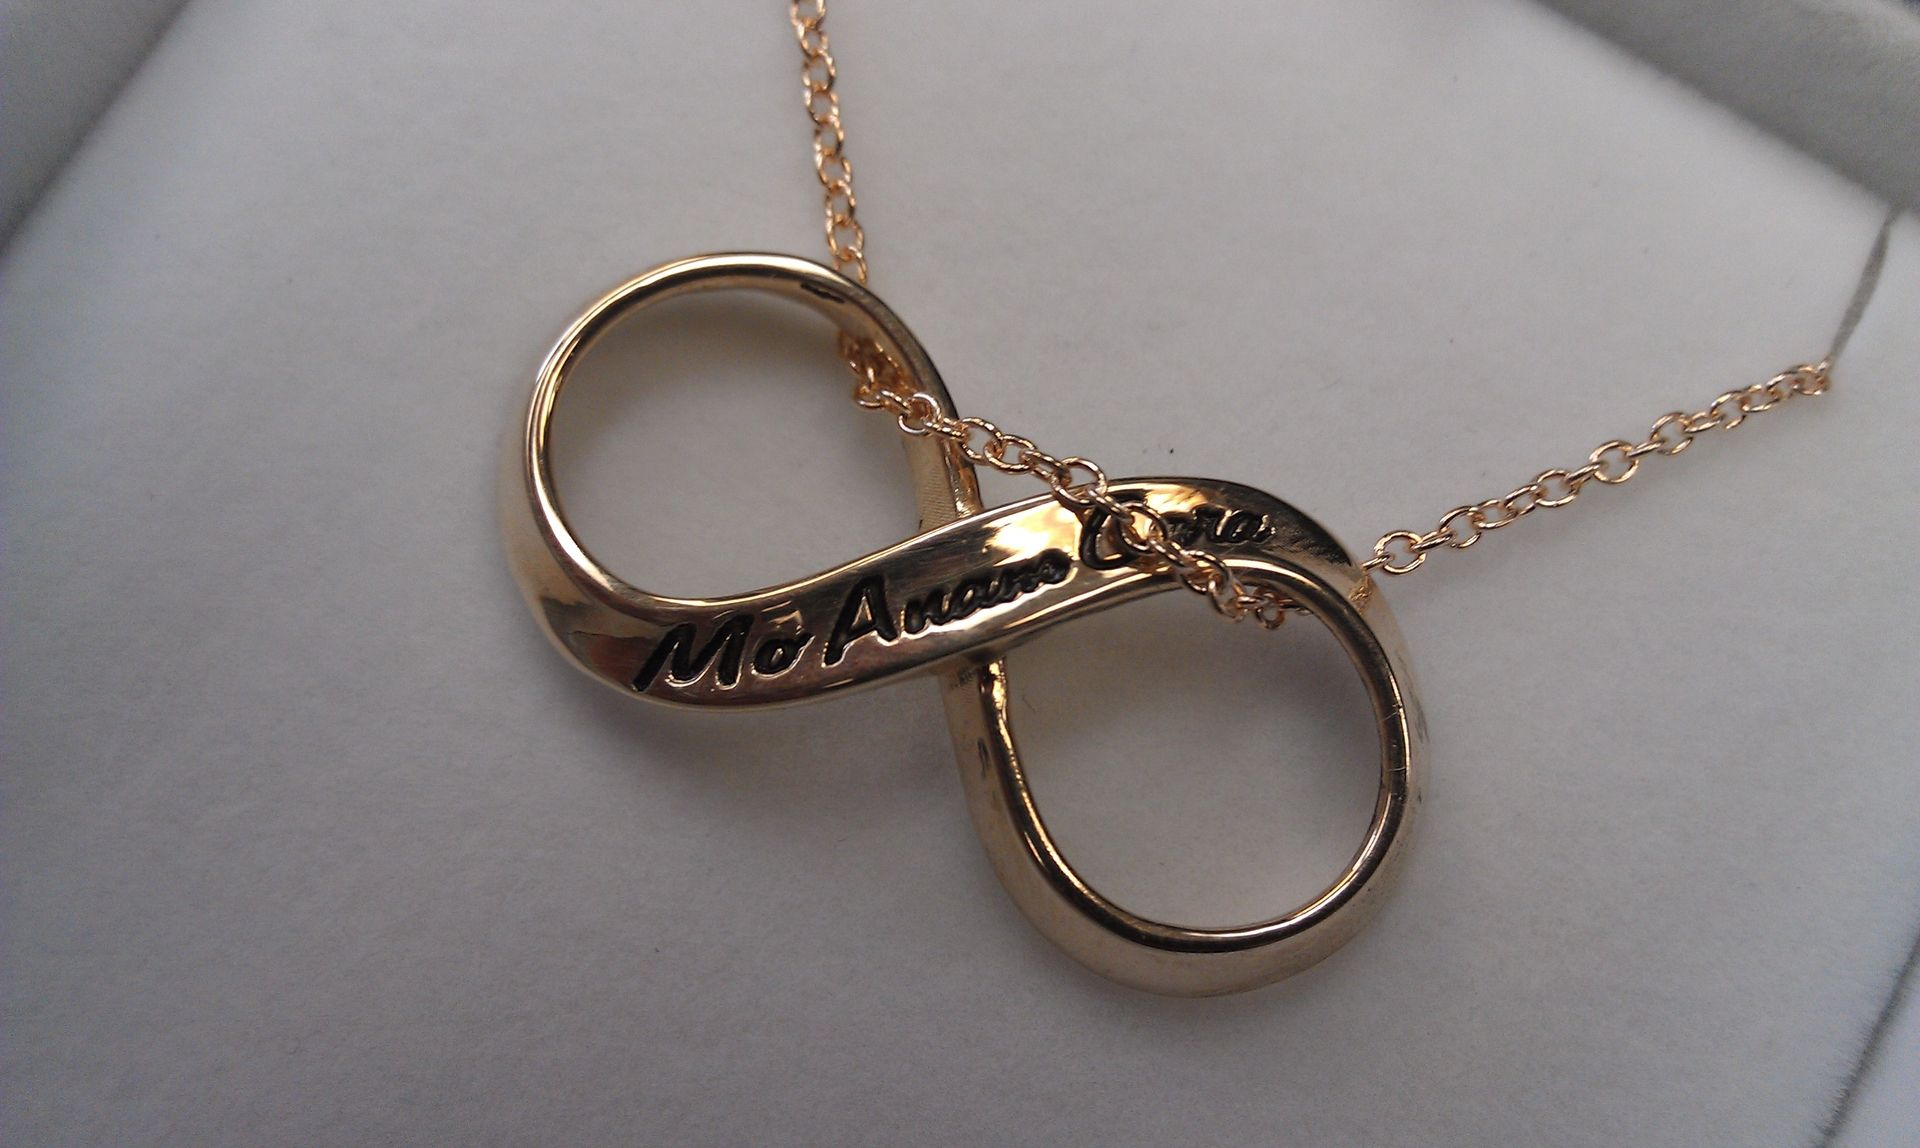 Hand Made Infinity Necklace By Paul Michael Design